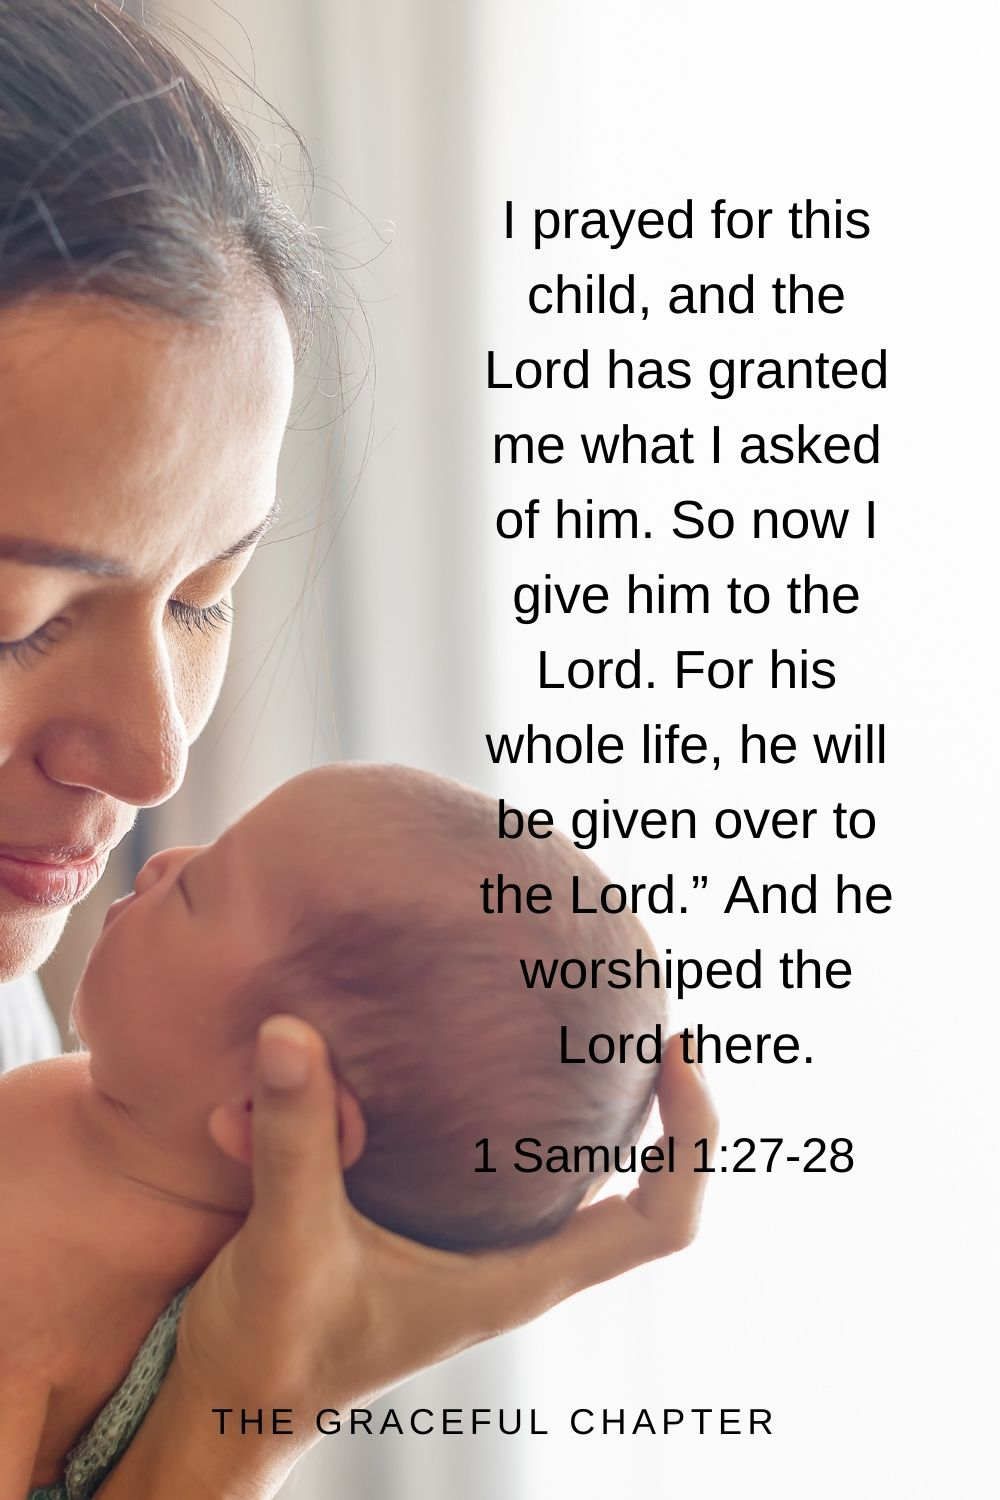 """I prayed for this child, and the Lord has granted me what I asked of him. So now I give him to the Lord. For his whole life, he will be given over to the Lord."""" And he worshiped the Lord there. 1 Samuel 1:27-28"""